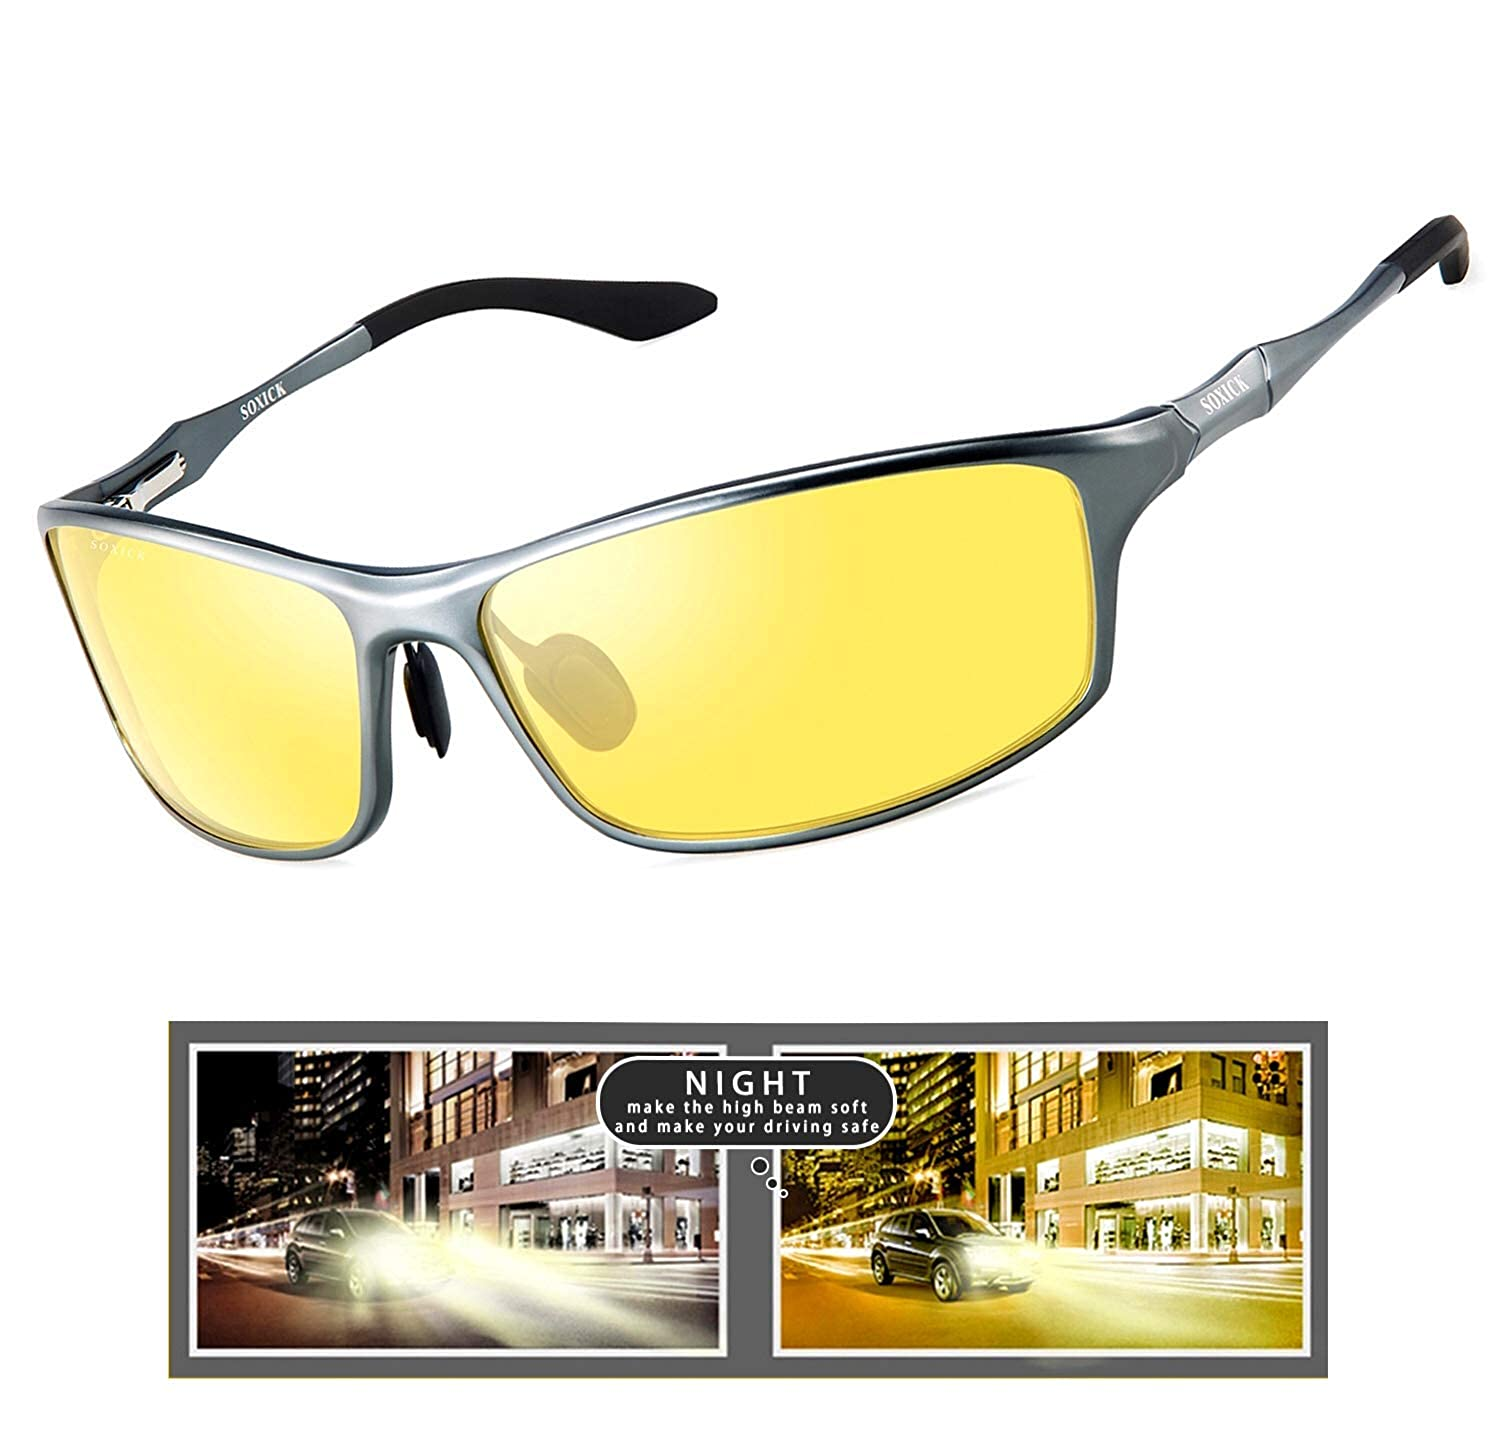 Night Vision Glasses for Driving, Polarized Anti Glare HD Night Driving Glasses Classic Style